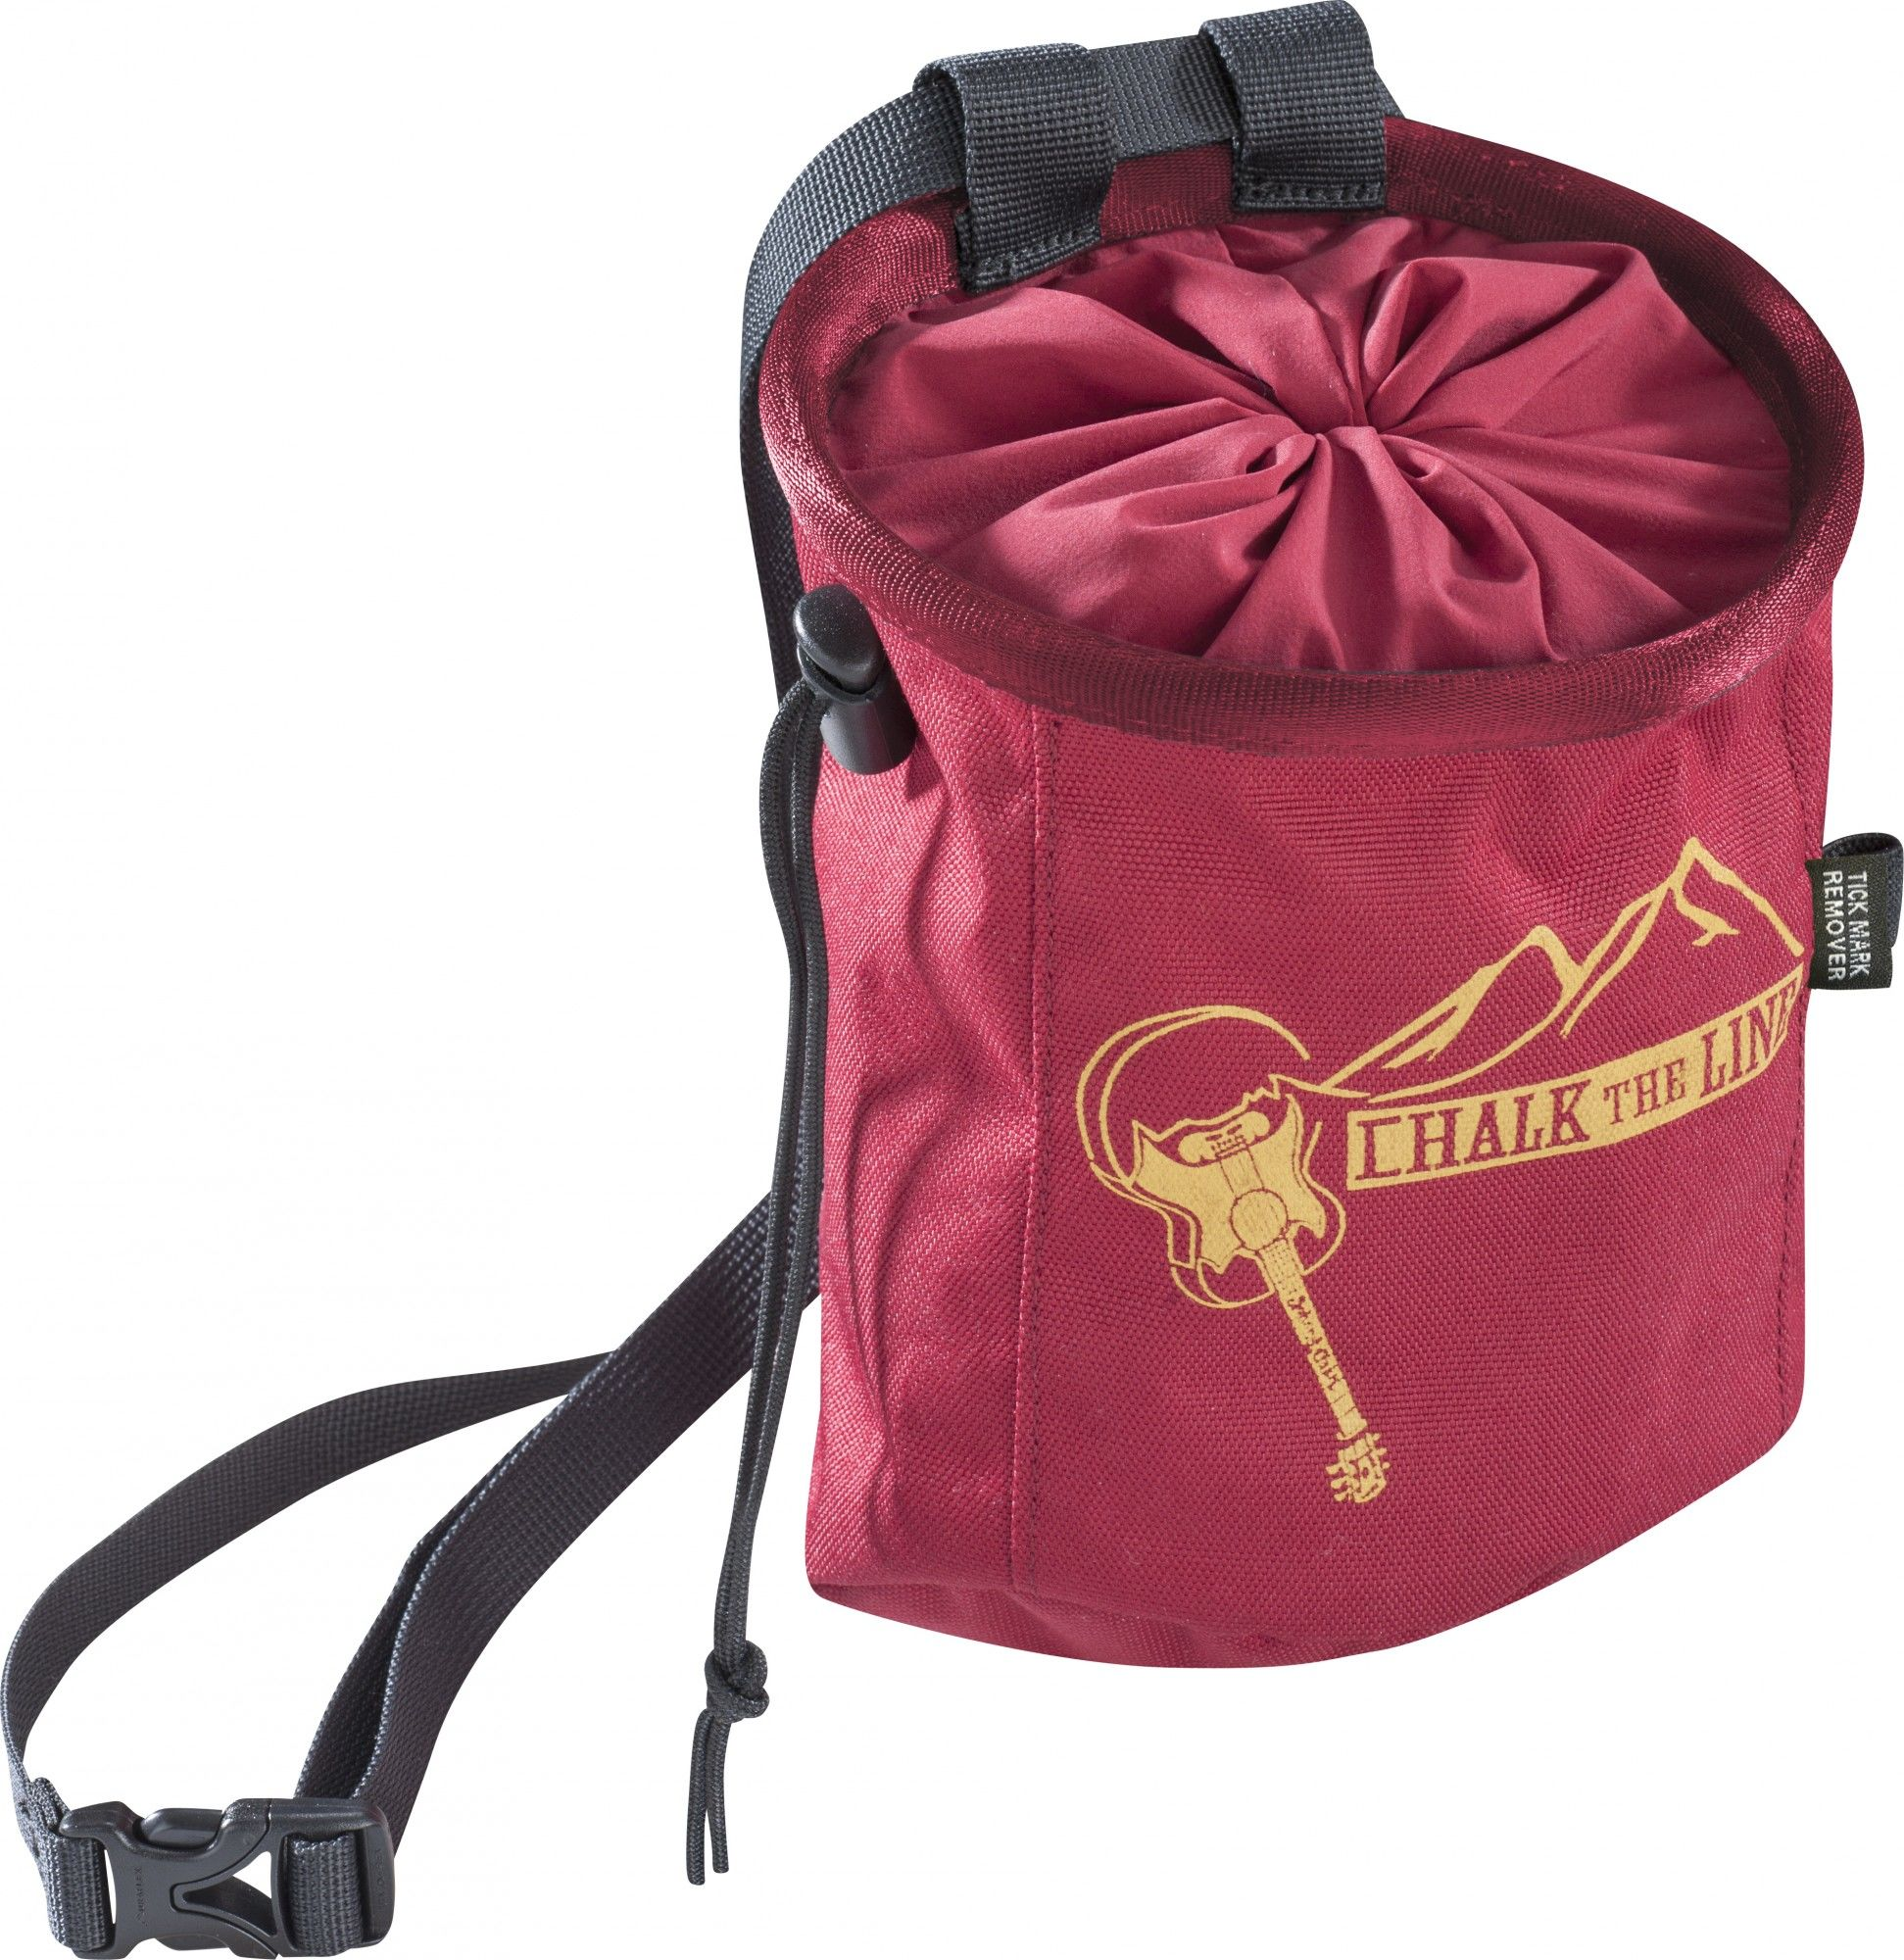 Edelrid Chalk Bag Rocket Rot, Klettern, One Size